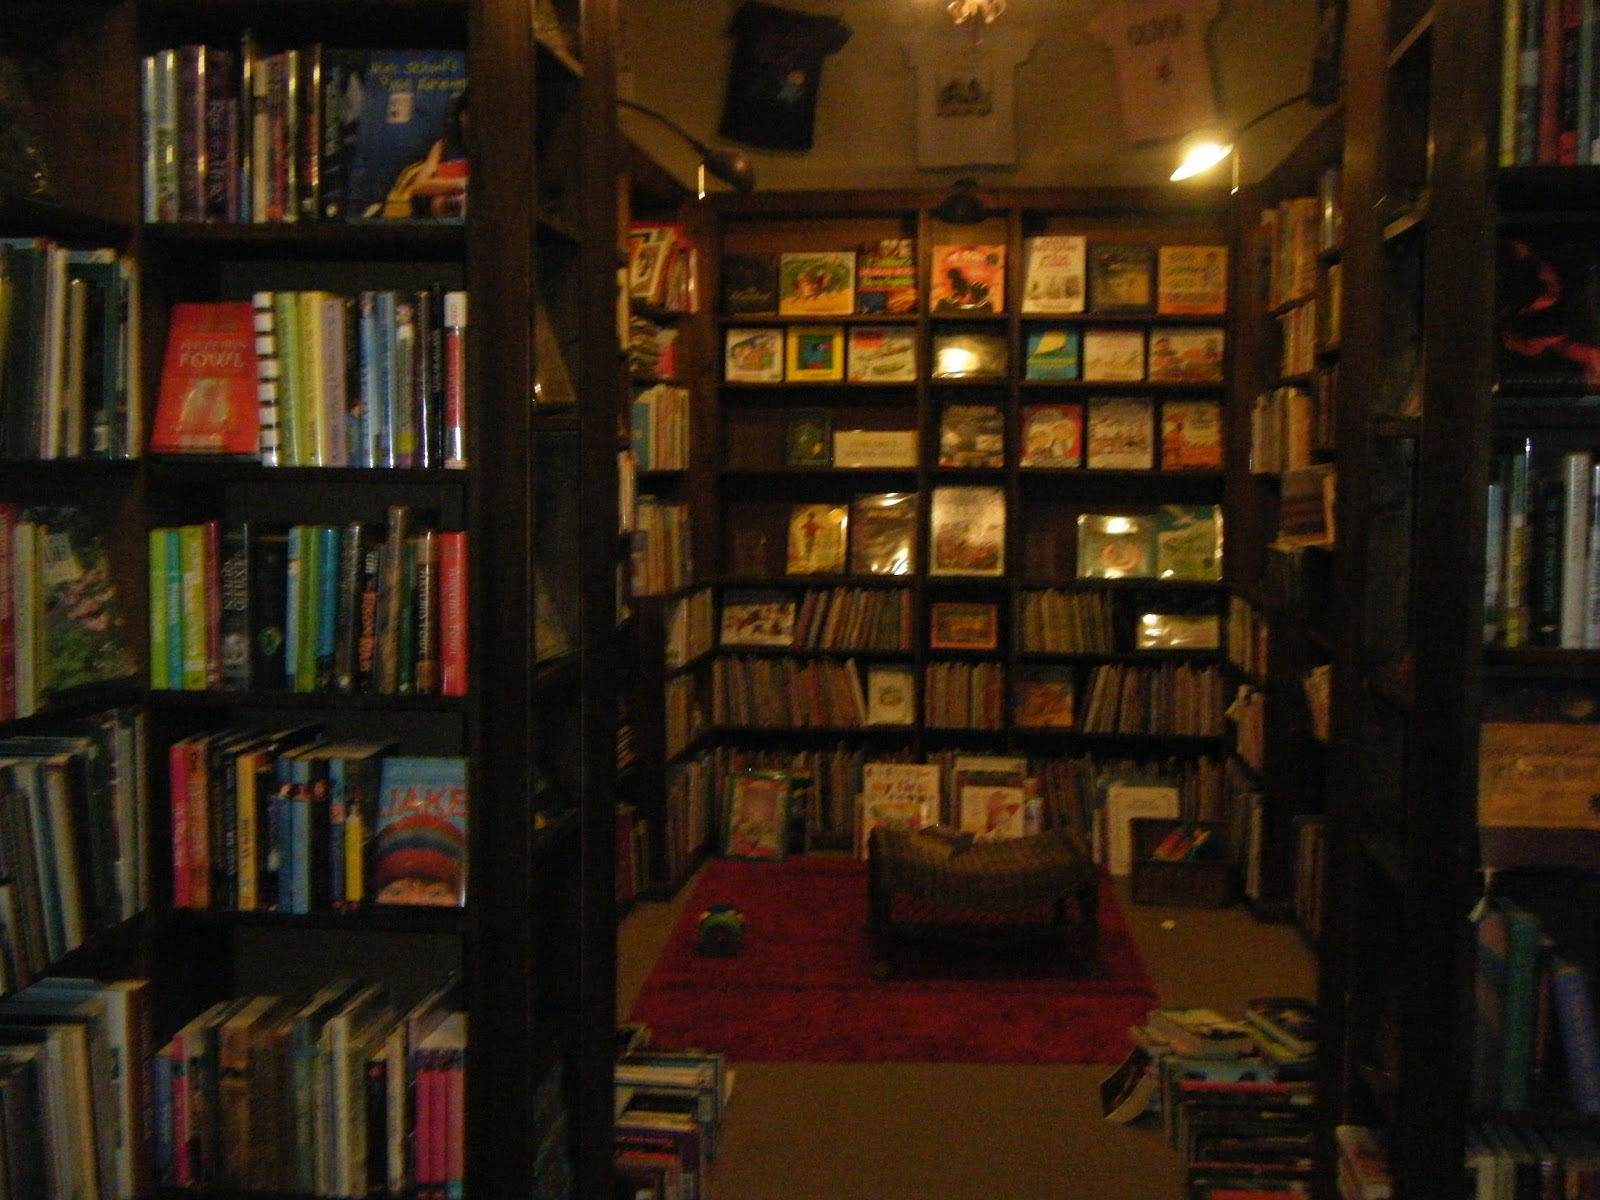 The Most FABULOUS Used Book Store I Have Ever Been In It Has More Books Than Any